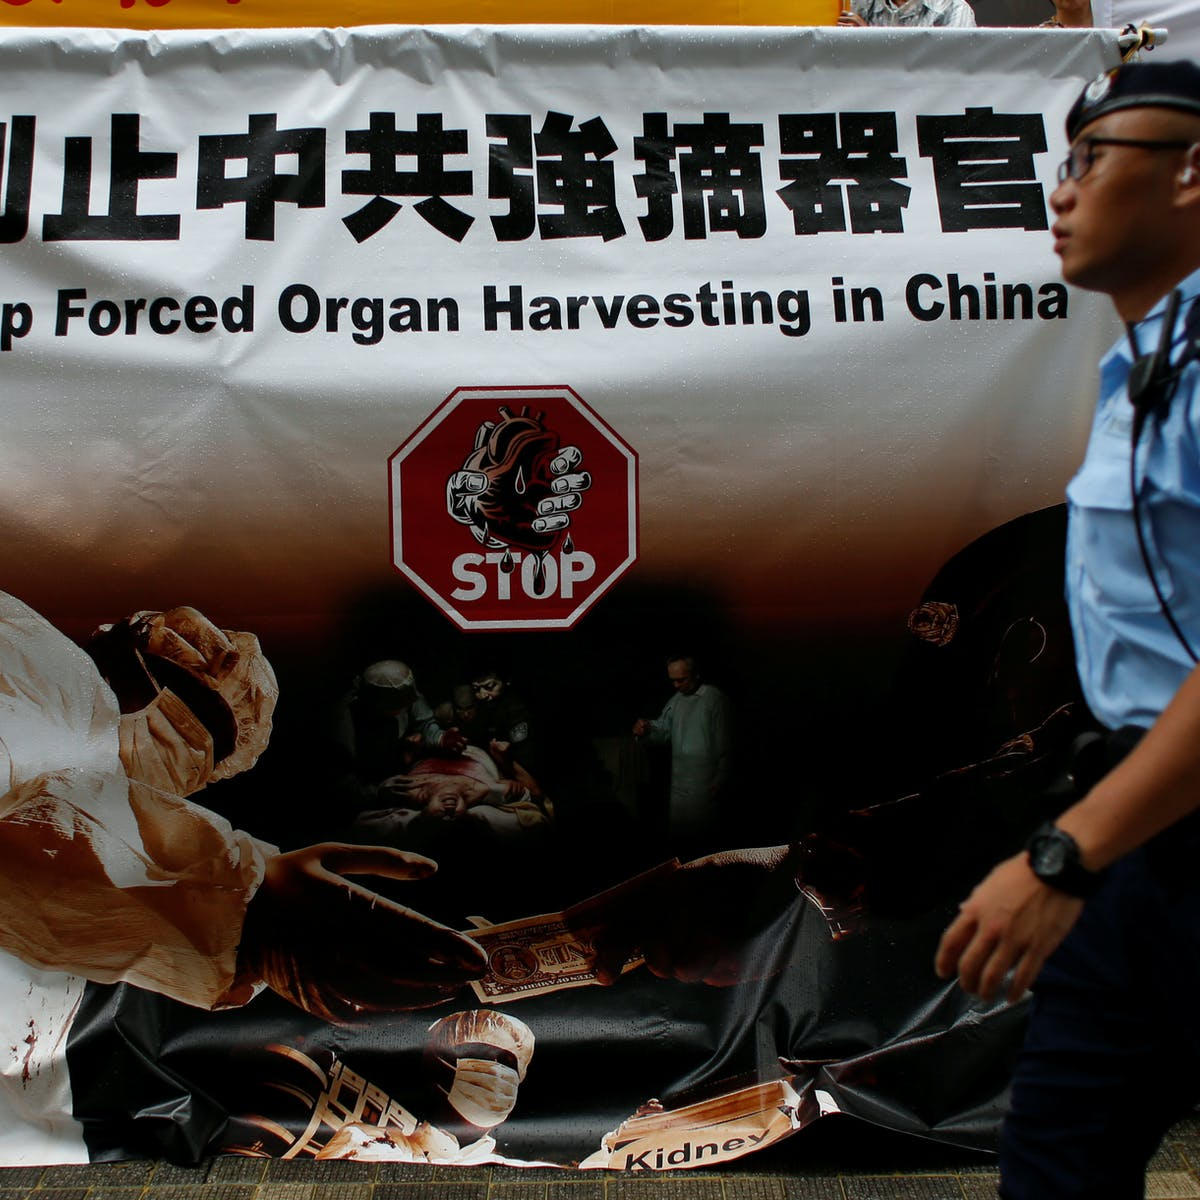 China says it has stopped harvesting organs, but evidence